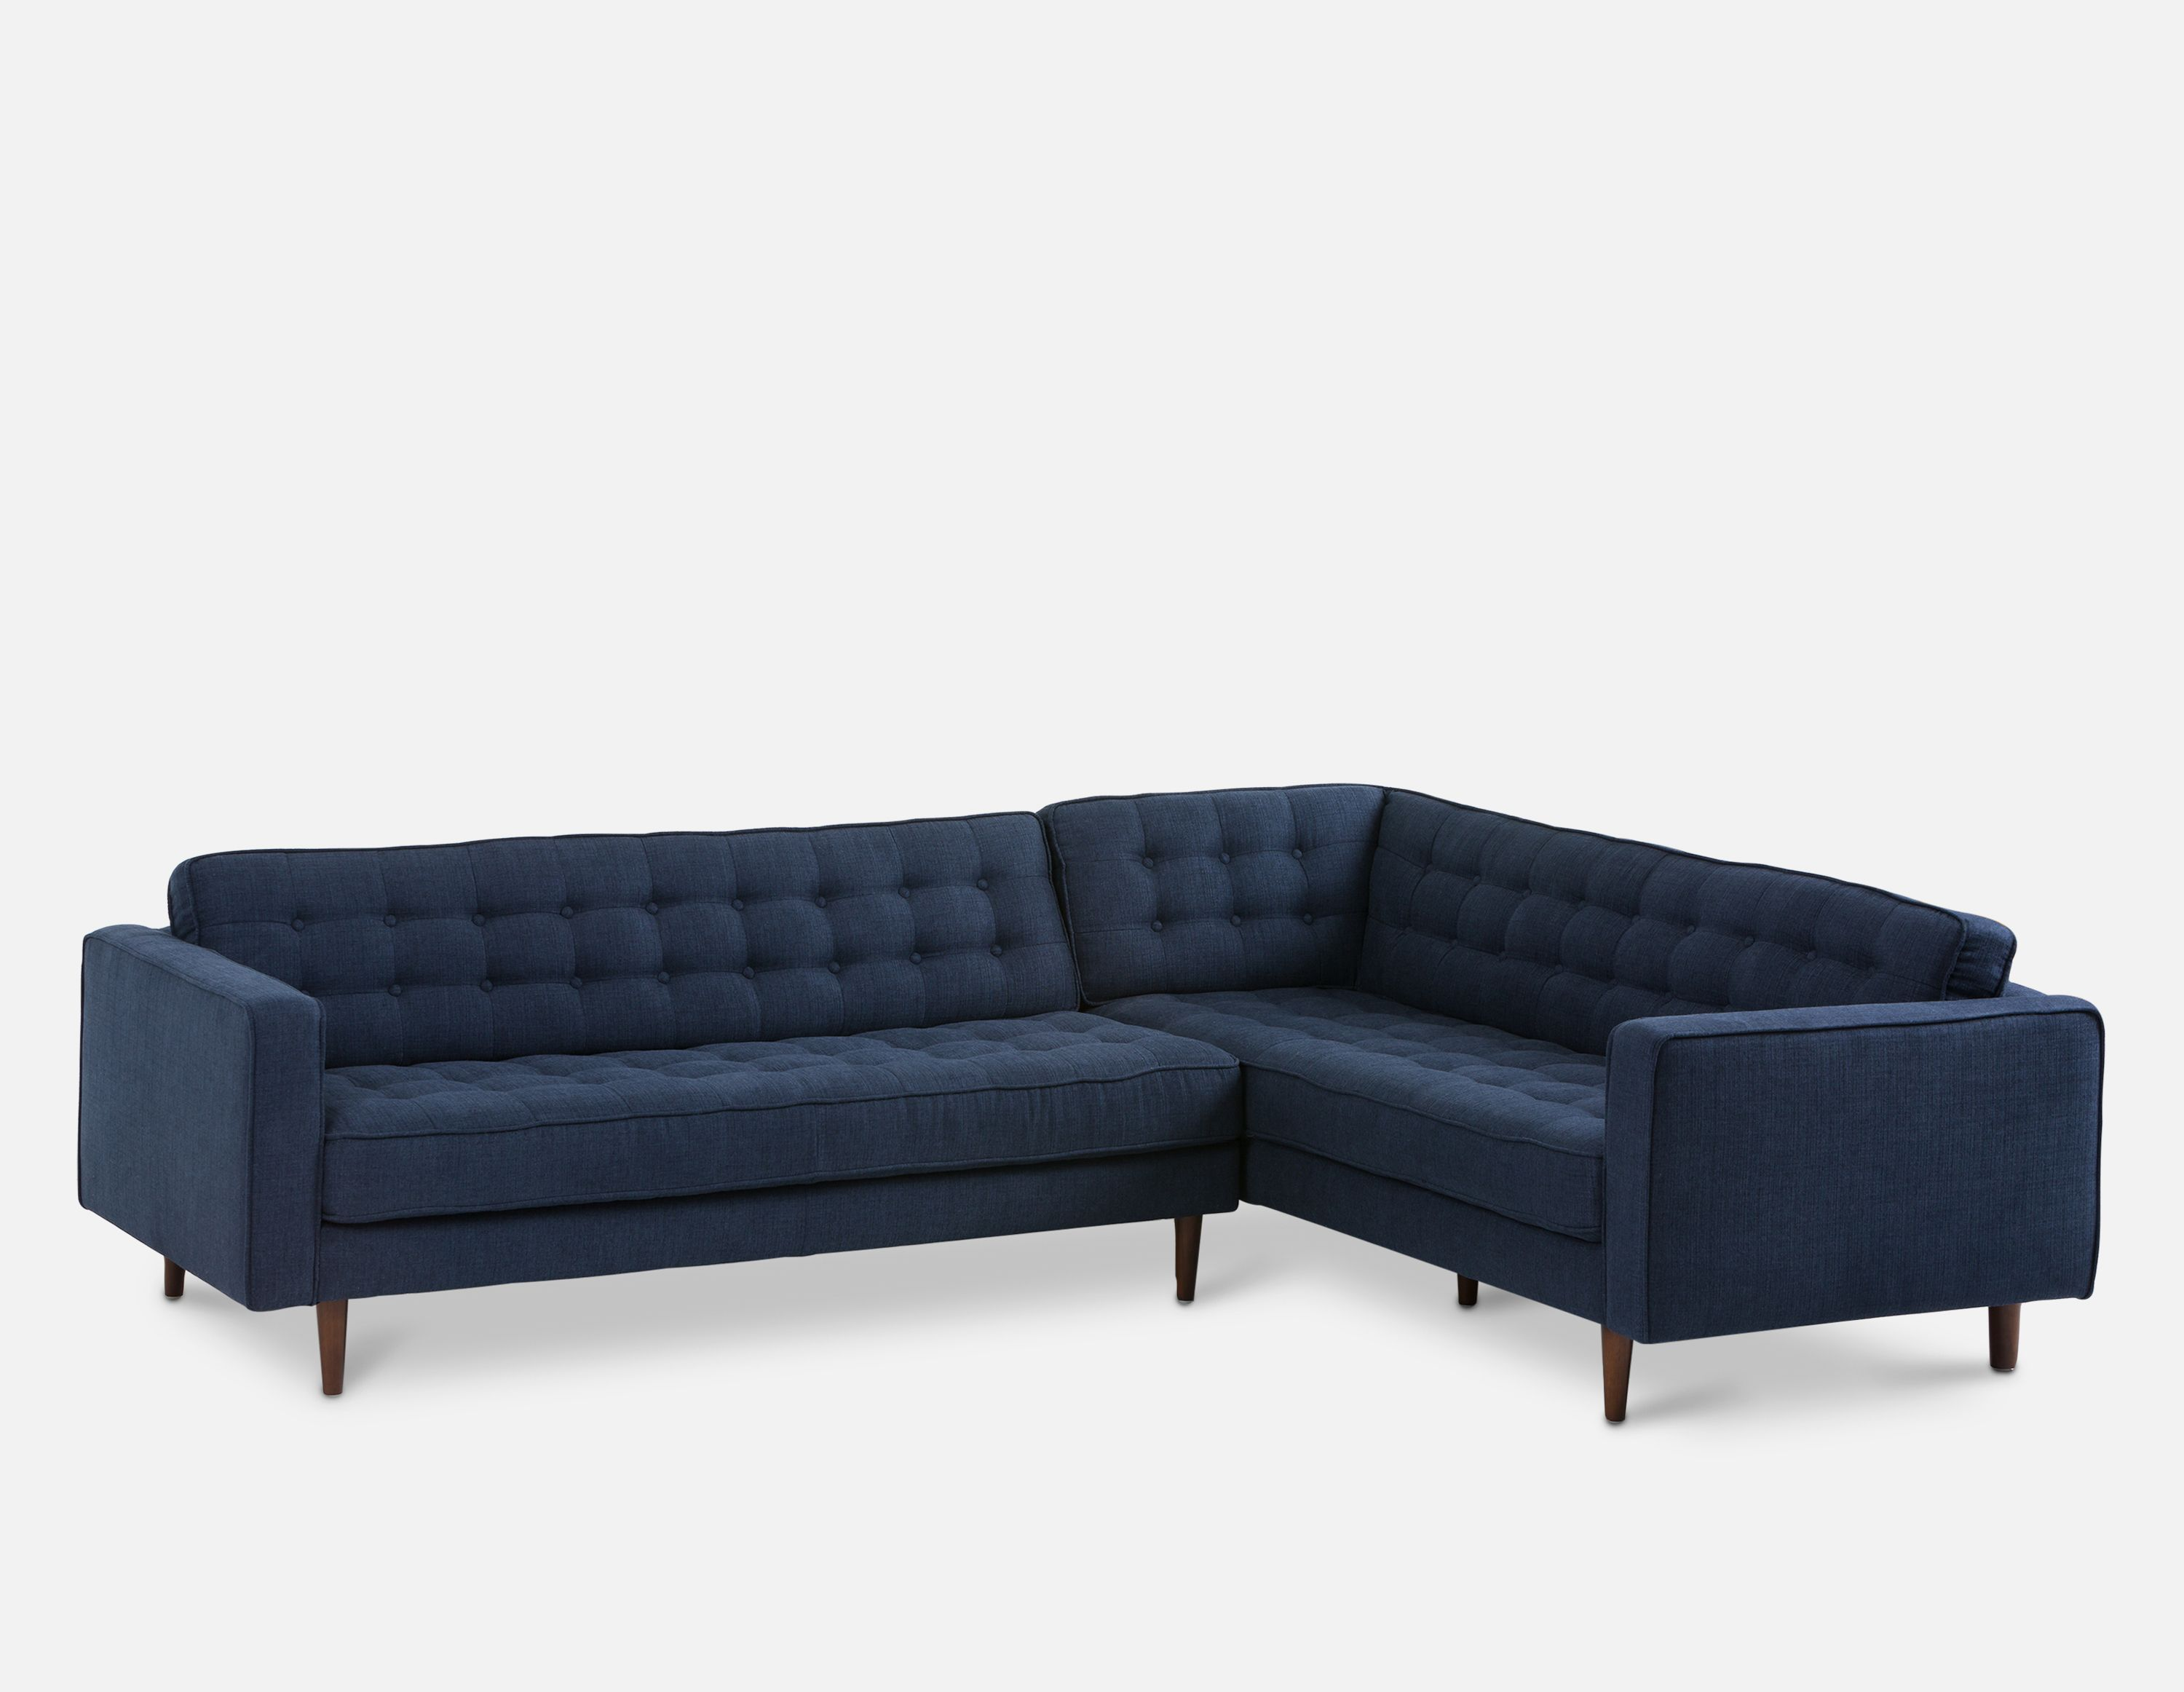 Awesome Blue Right Facing Sectional Sofa Structube Flanigan In Creativecarmelina Interior Chair Design Creativecarmelinacom